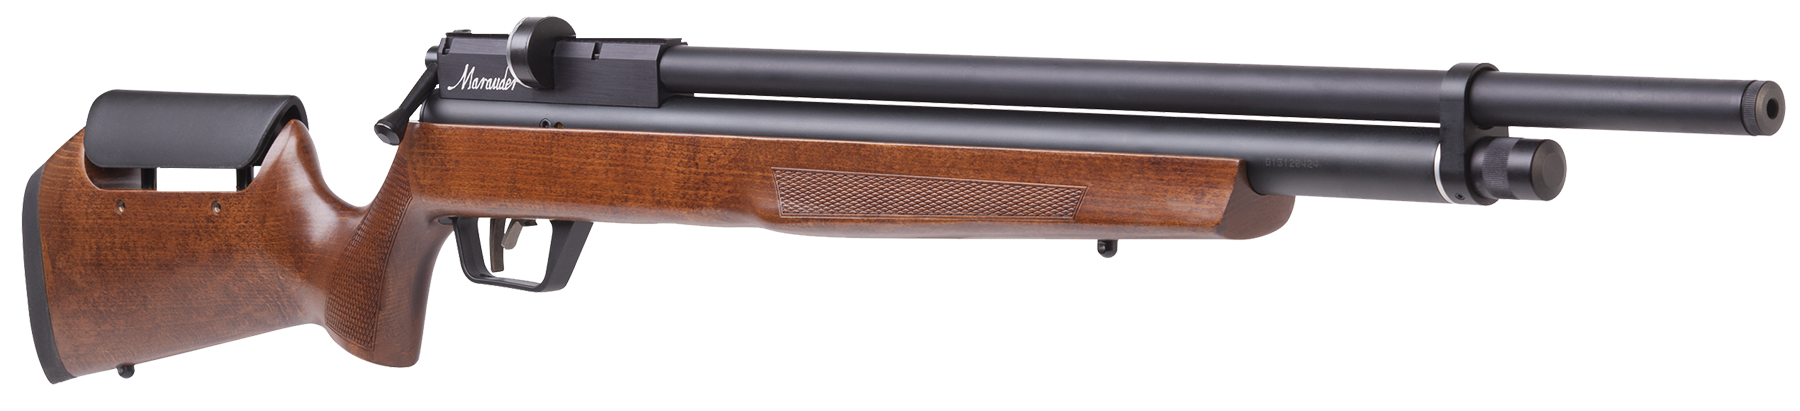 Benjamin BP1764W Marauder Air Rifle Bolt .177 Pellet Hardwood Stock